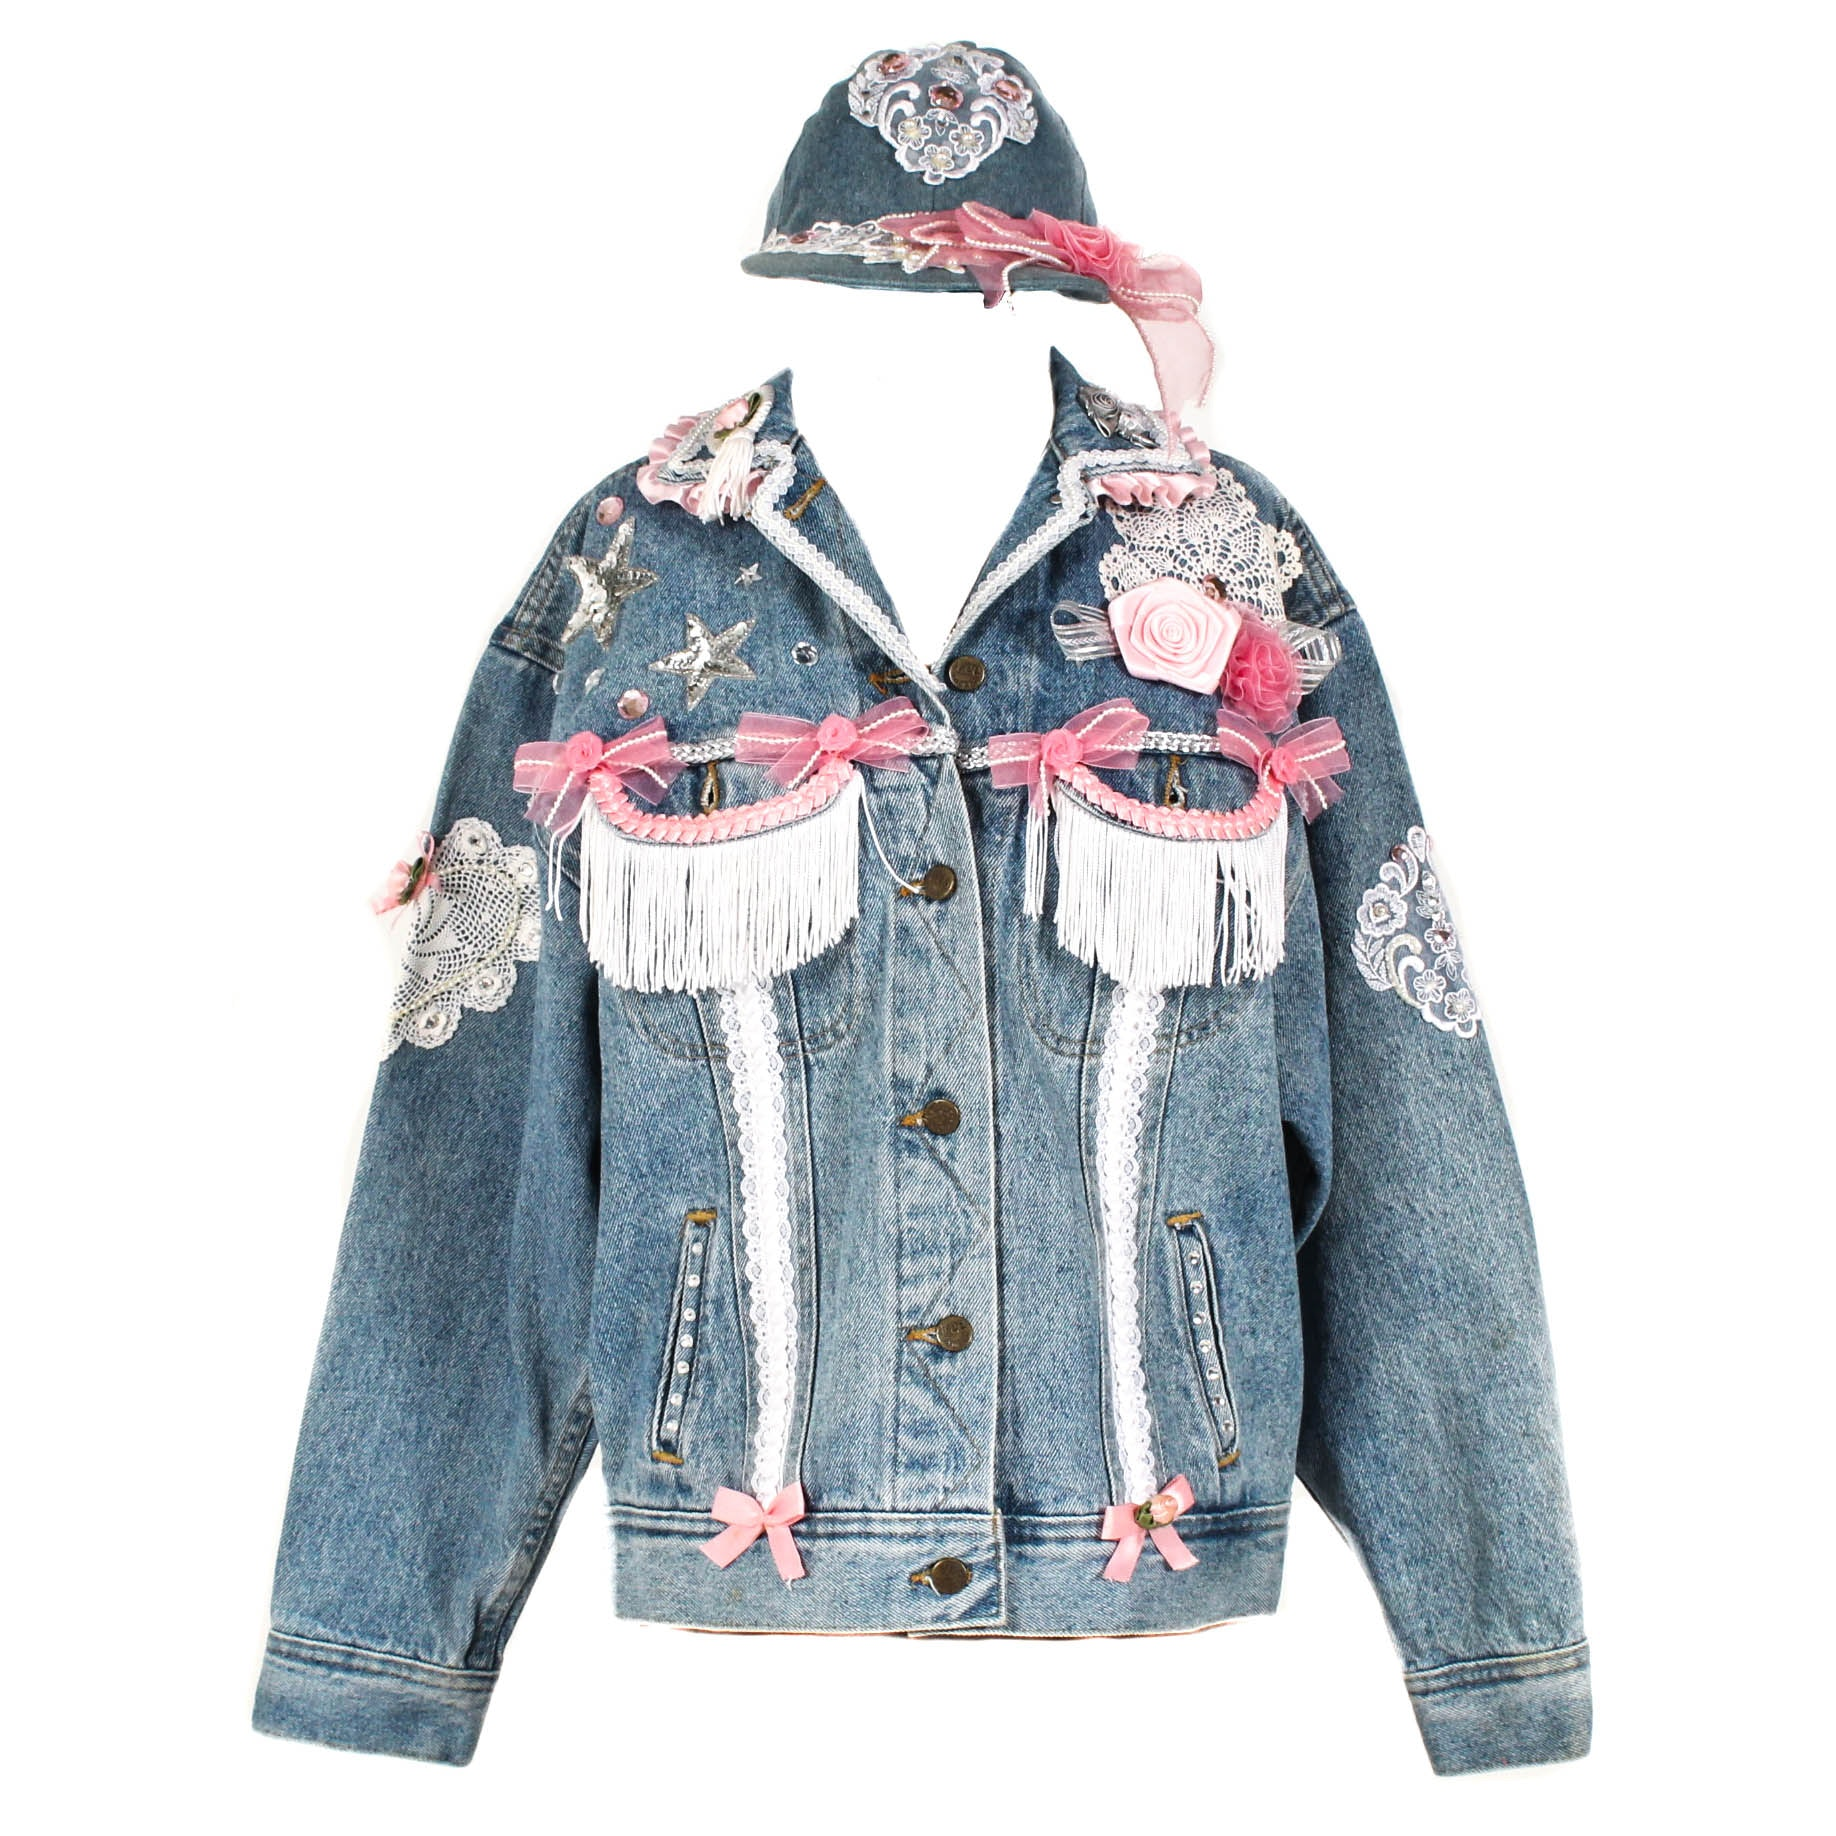 Vintage Bedazzled Denim Jacket with Hat